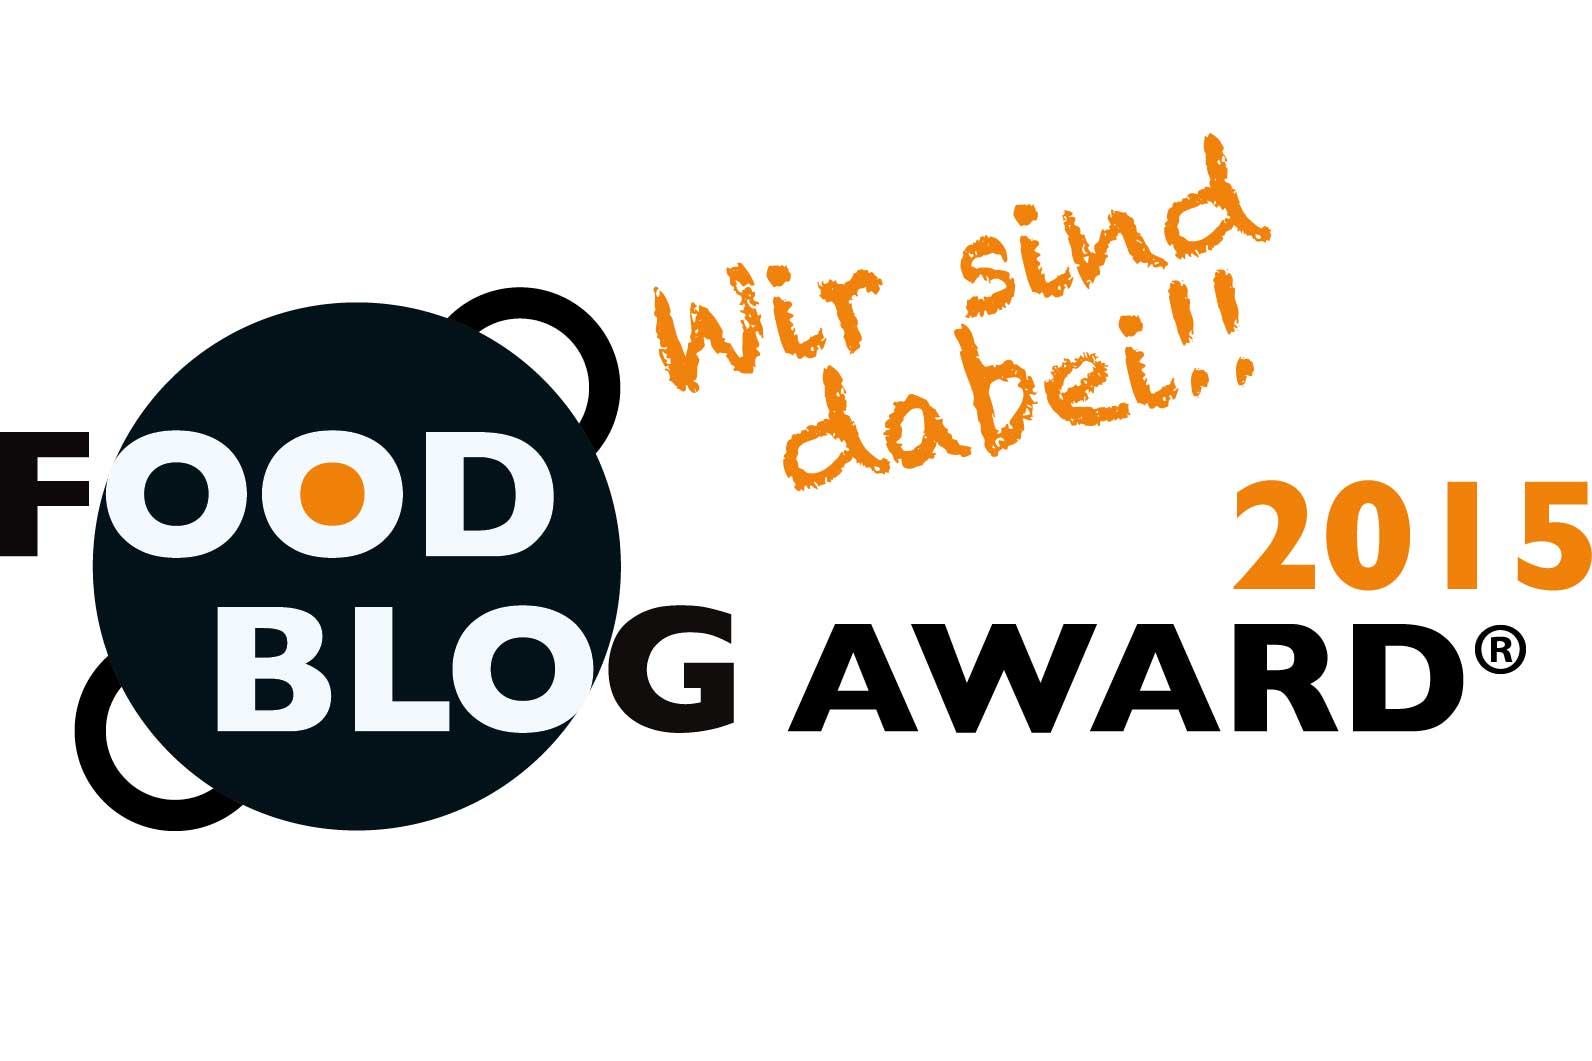 food blogger award 2015